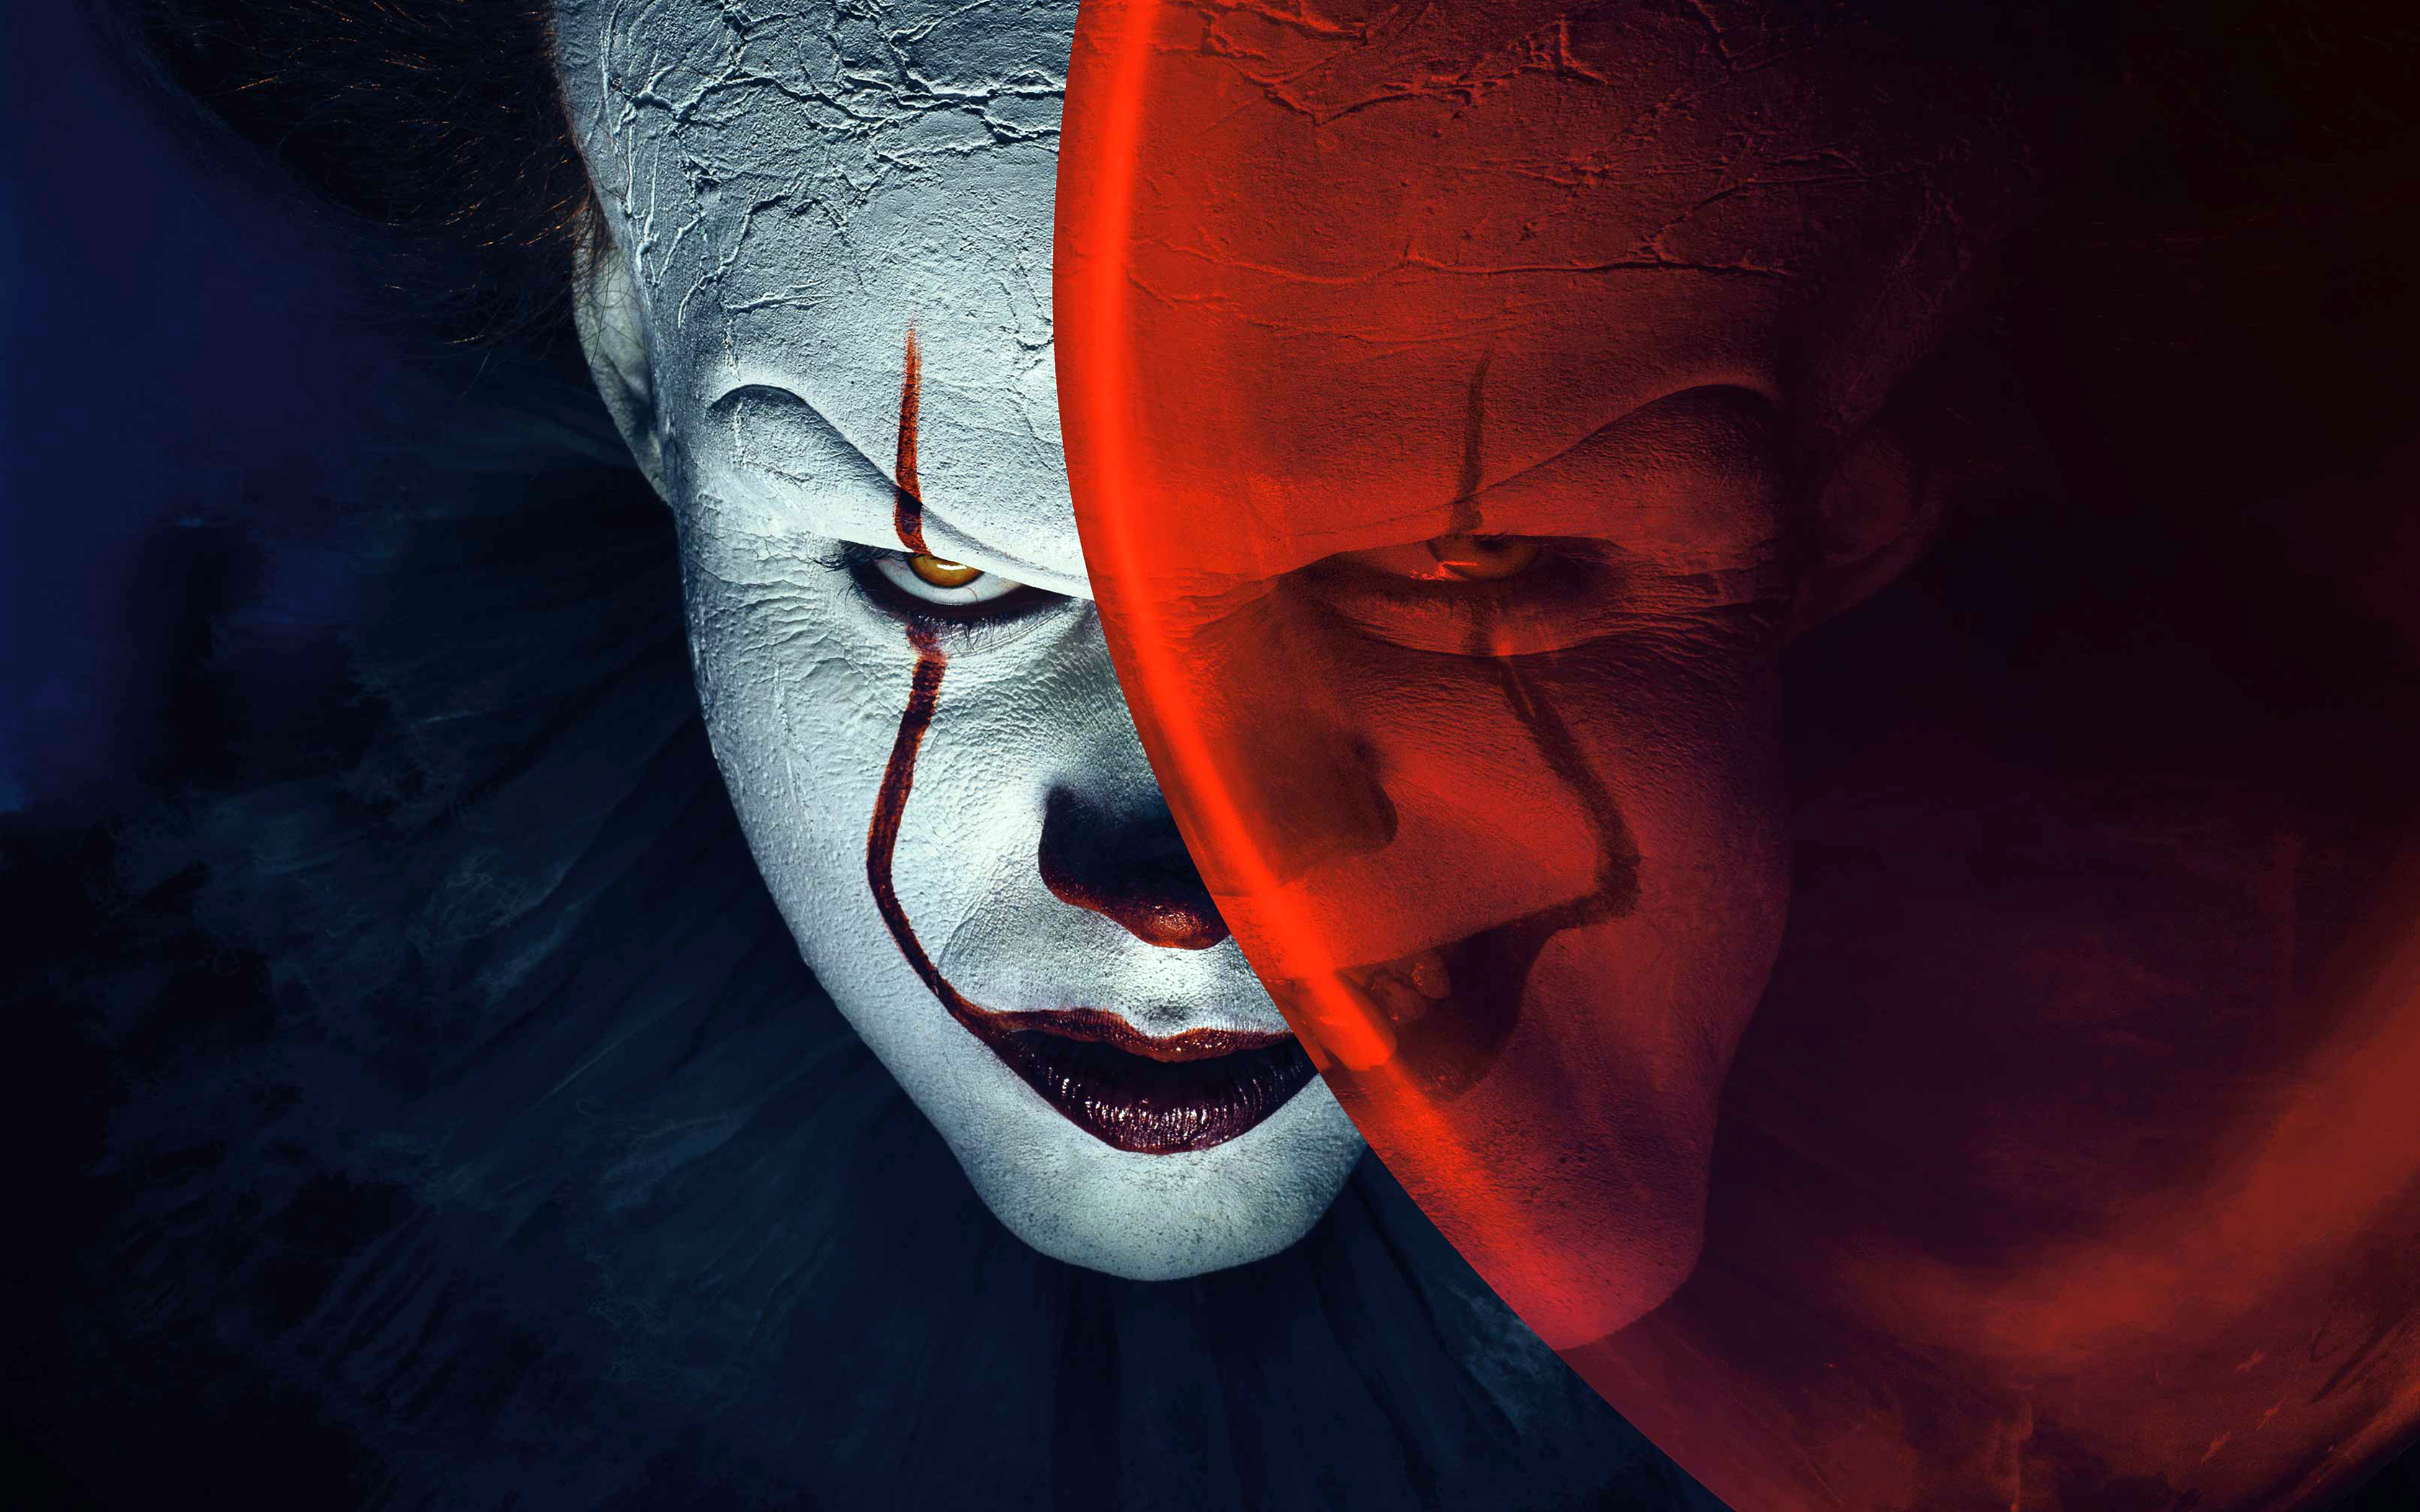 Wonder 2017 4k Movie Hd Movies 4k Wallpapers Images: Pennywise The Clown It 2017 Movie 4k, HD Movies, 4k